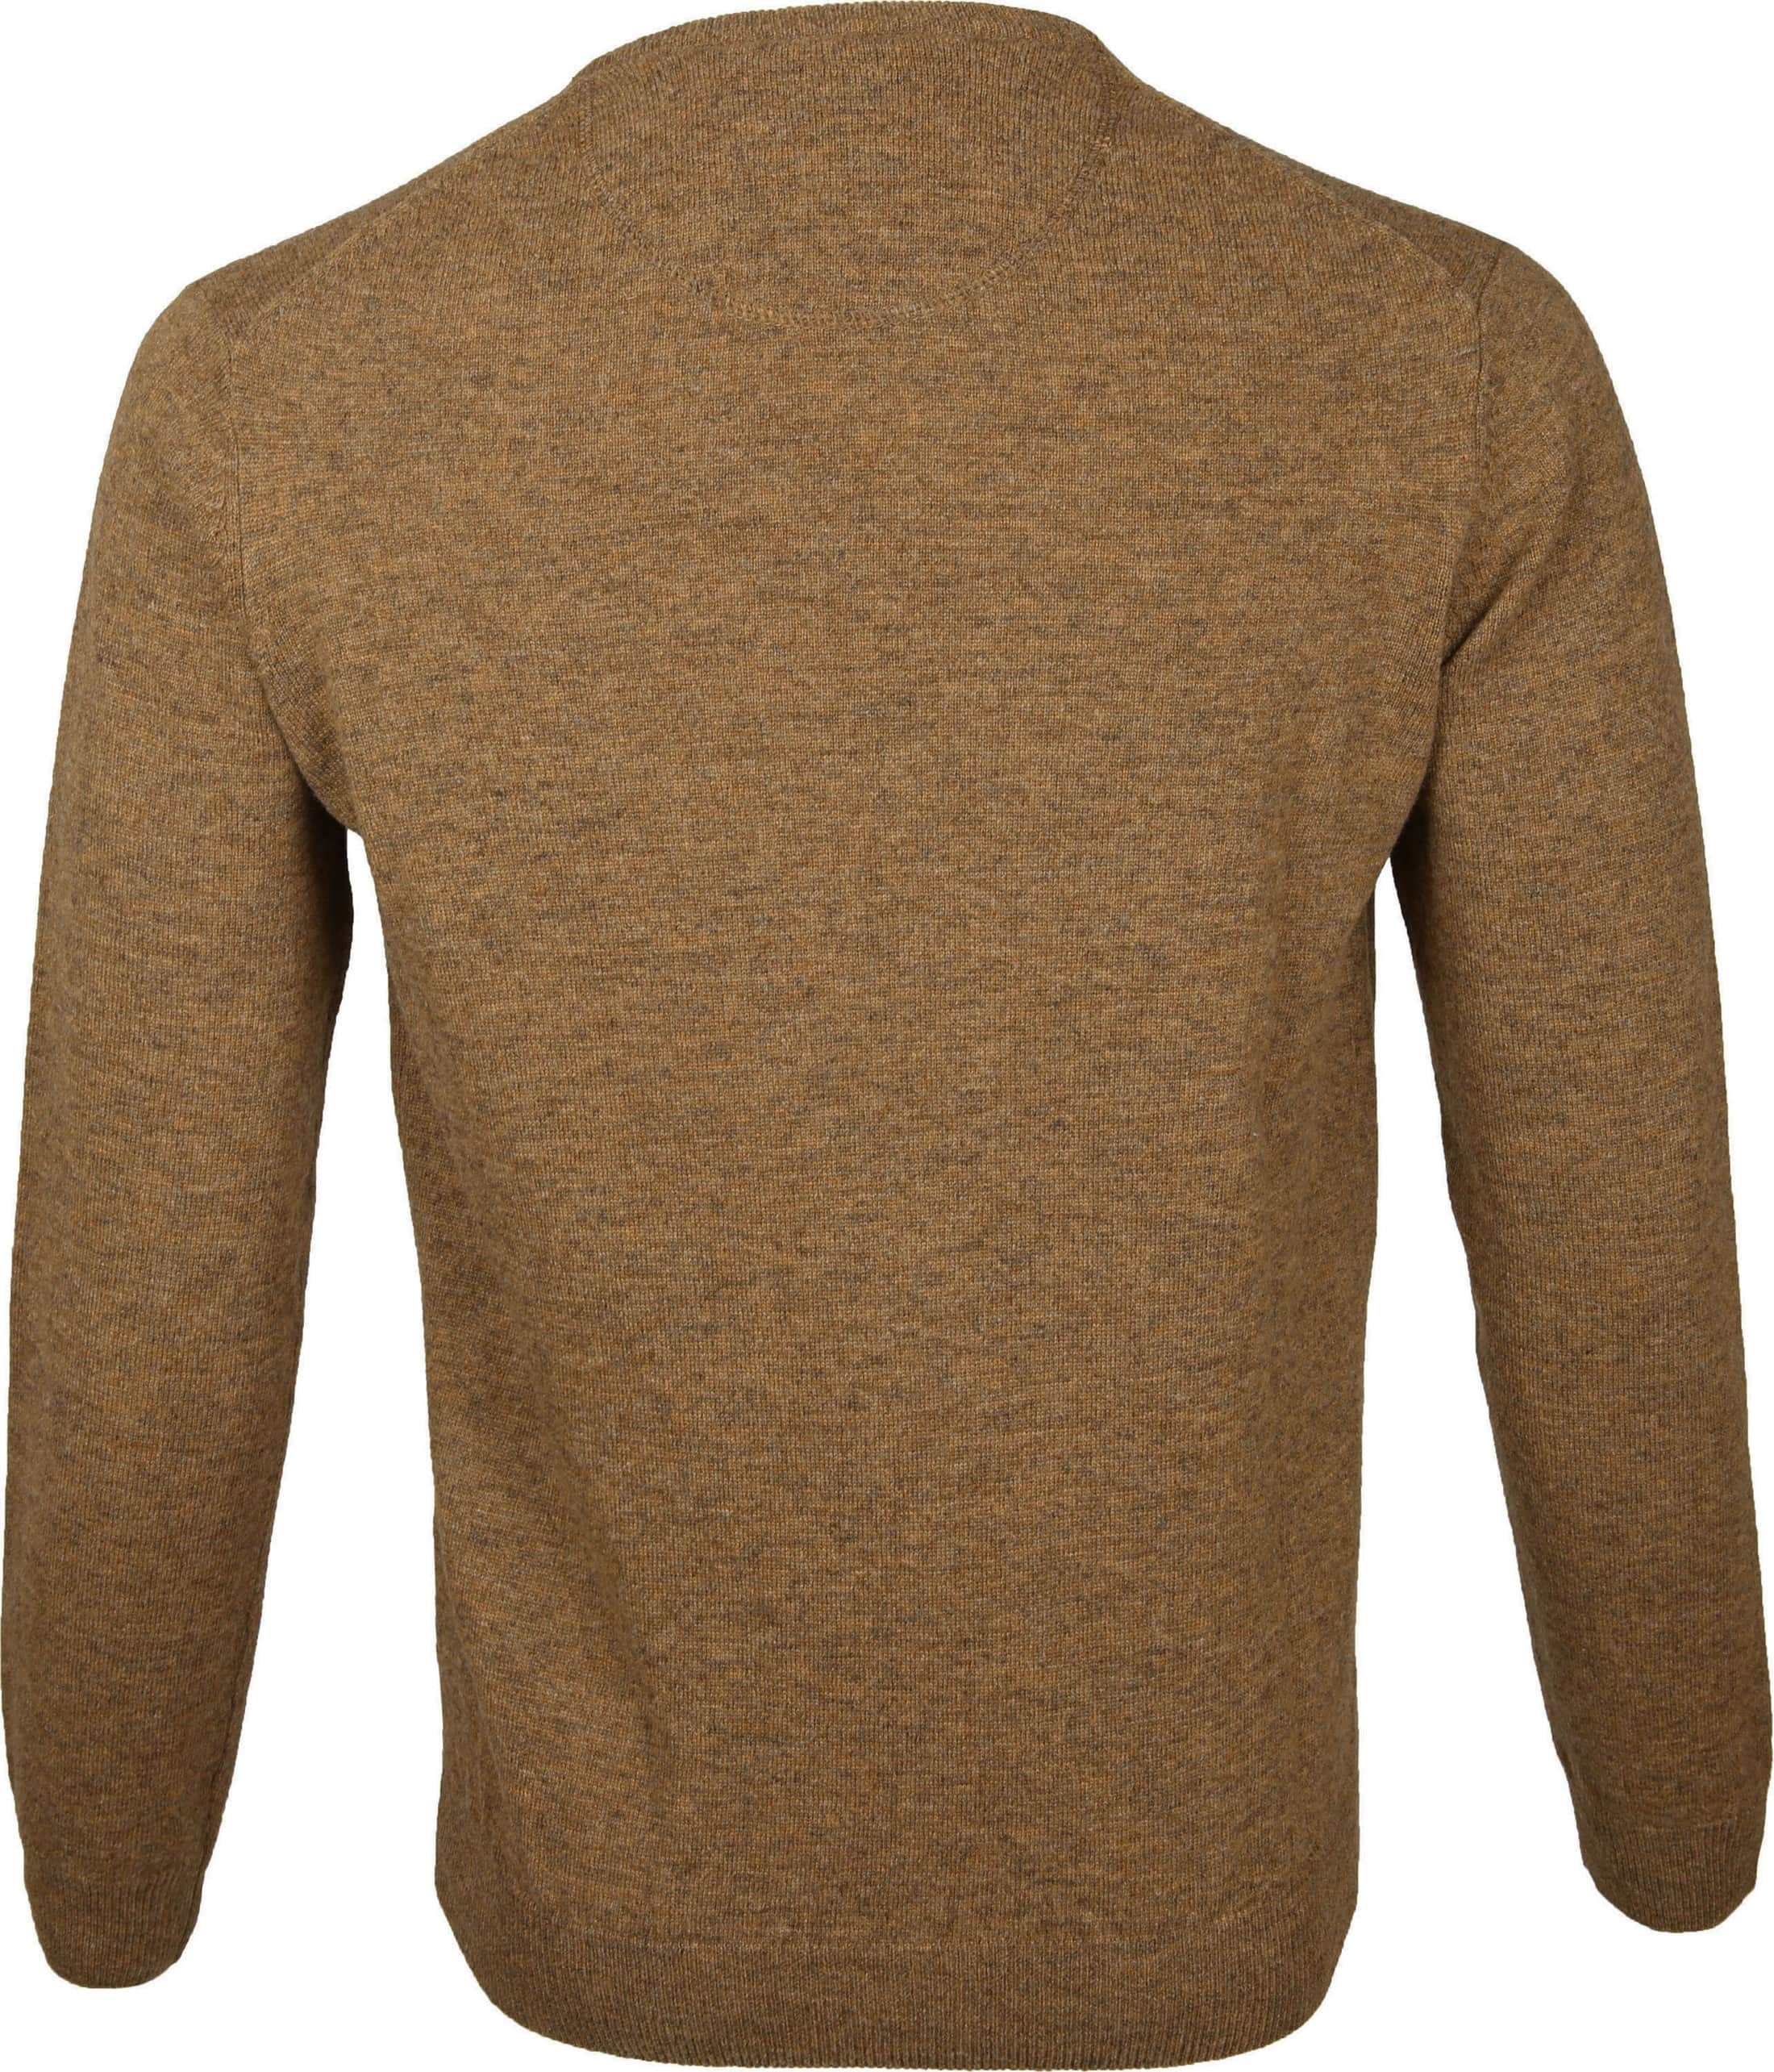 Suitable Pullover Lamswol V-Hals Camel foto 2